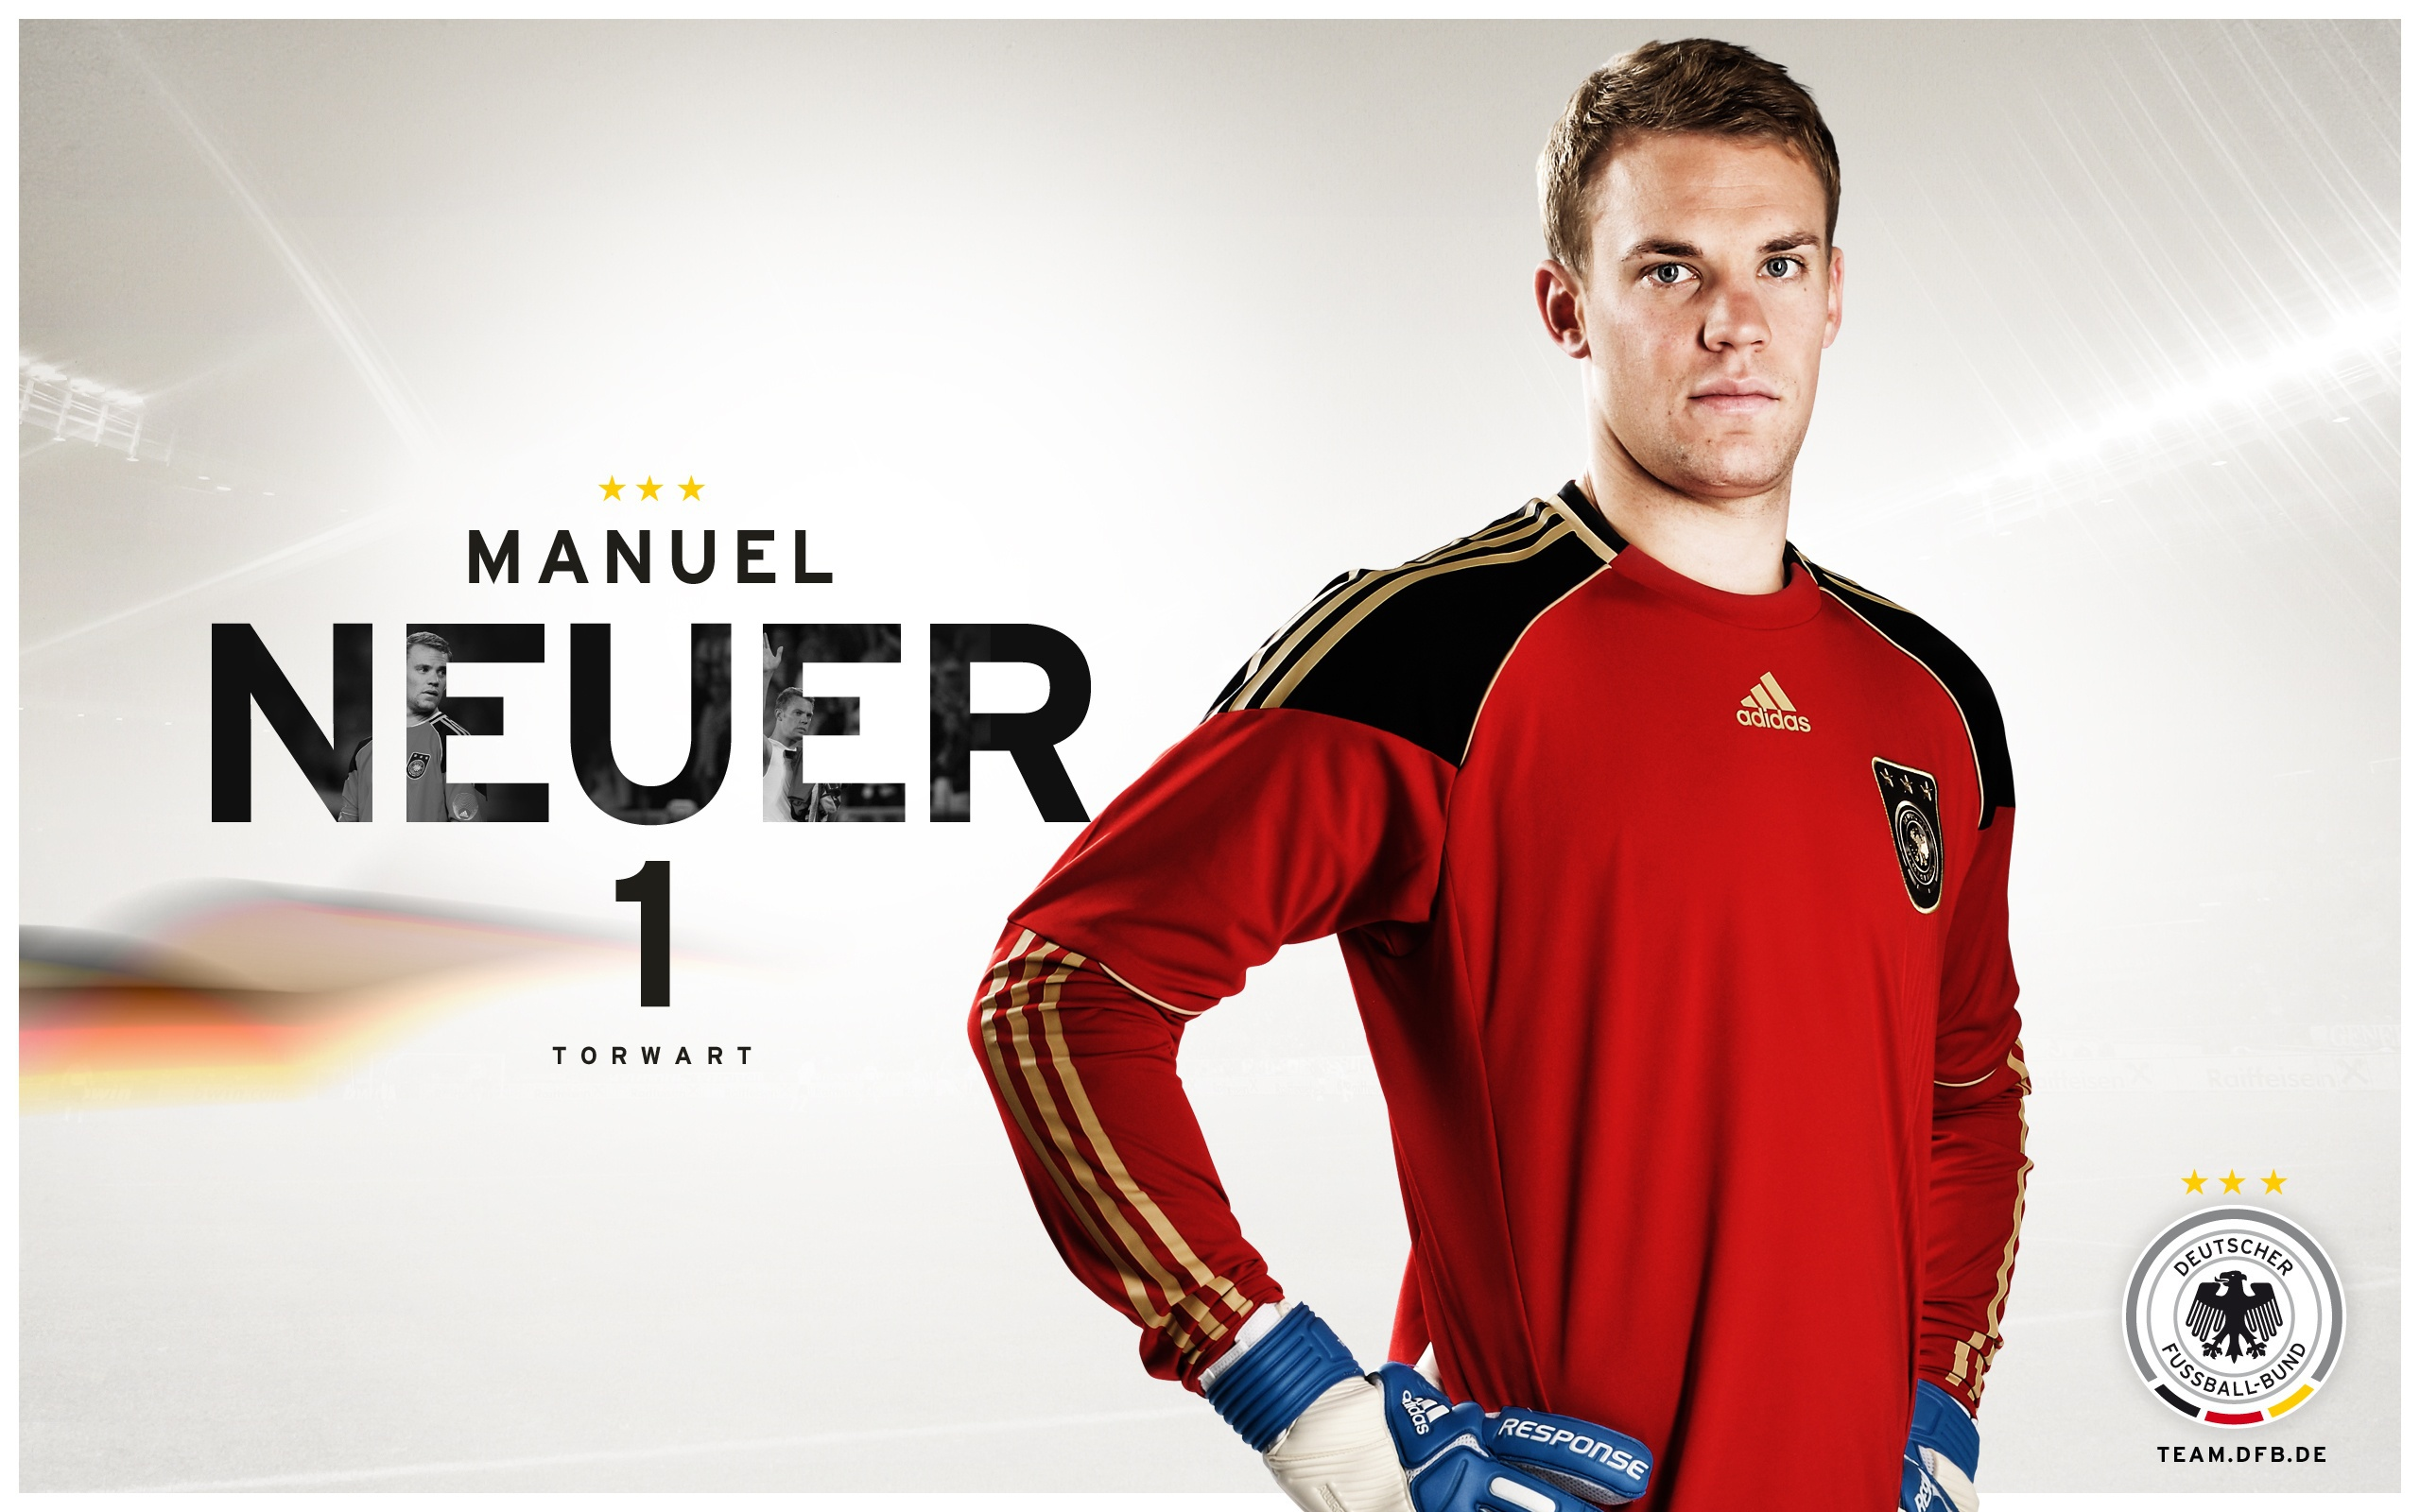 Manuel Neuer Wallpapers Images Photos Pictures Backgrounds